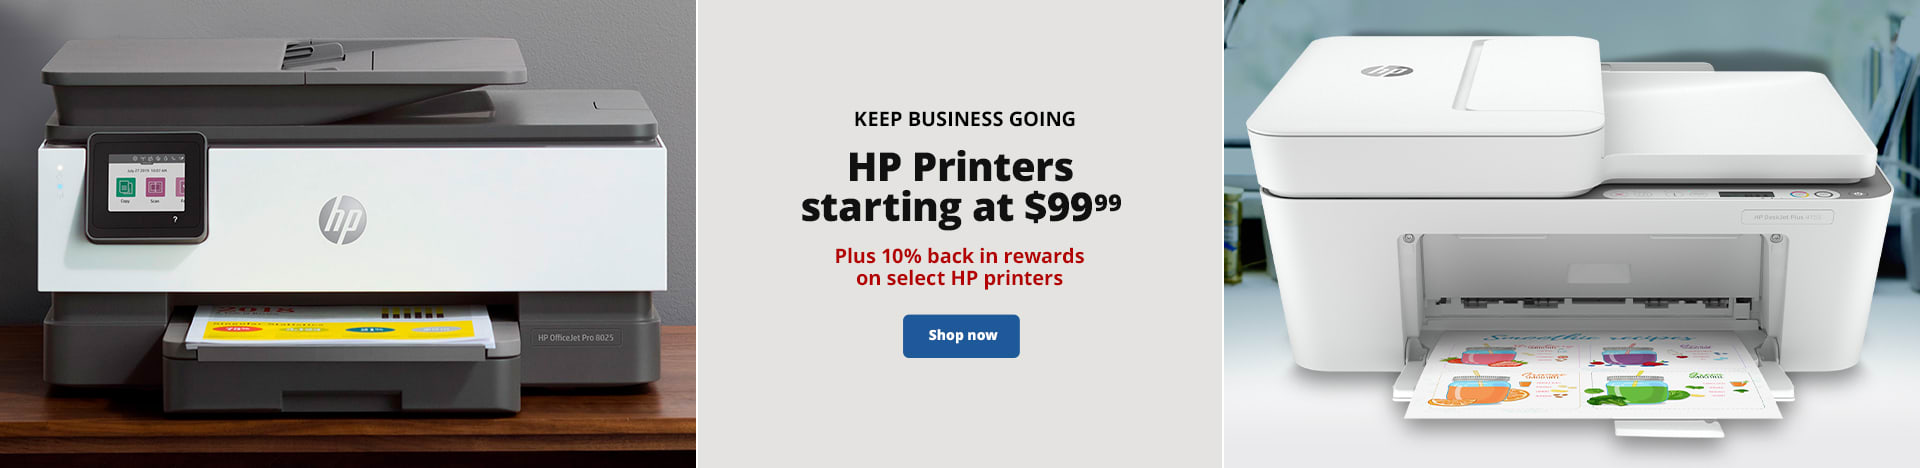 Keep Business Going. HP Printers starting at $99.99. Plus 10% back in rewards on select HP printers